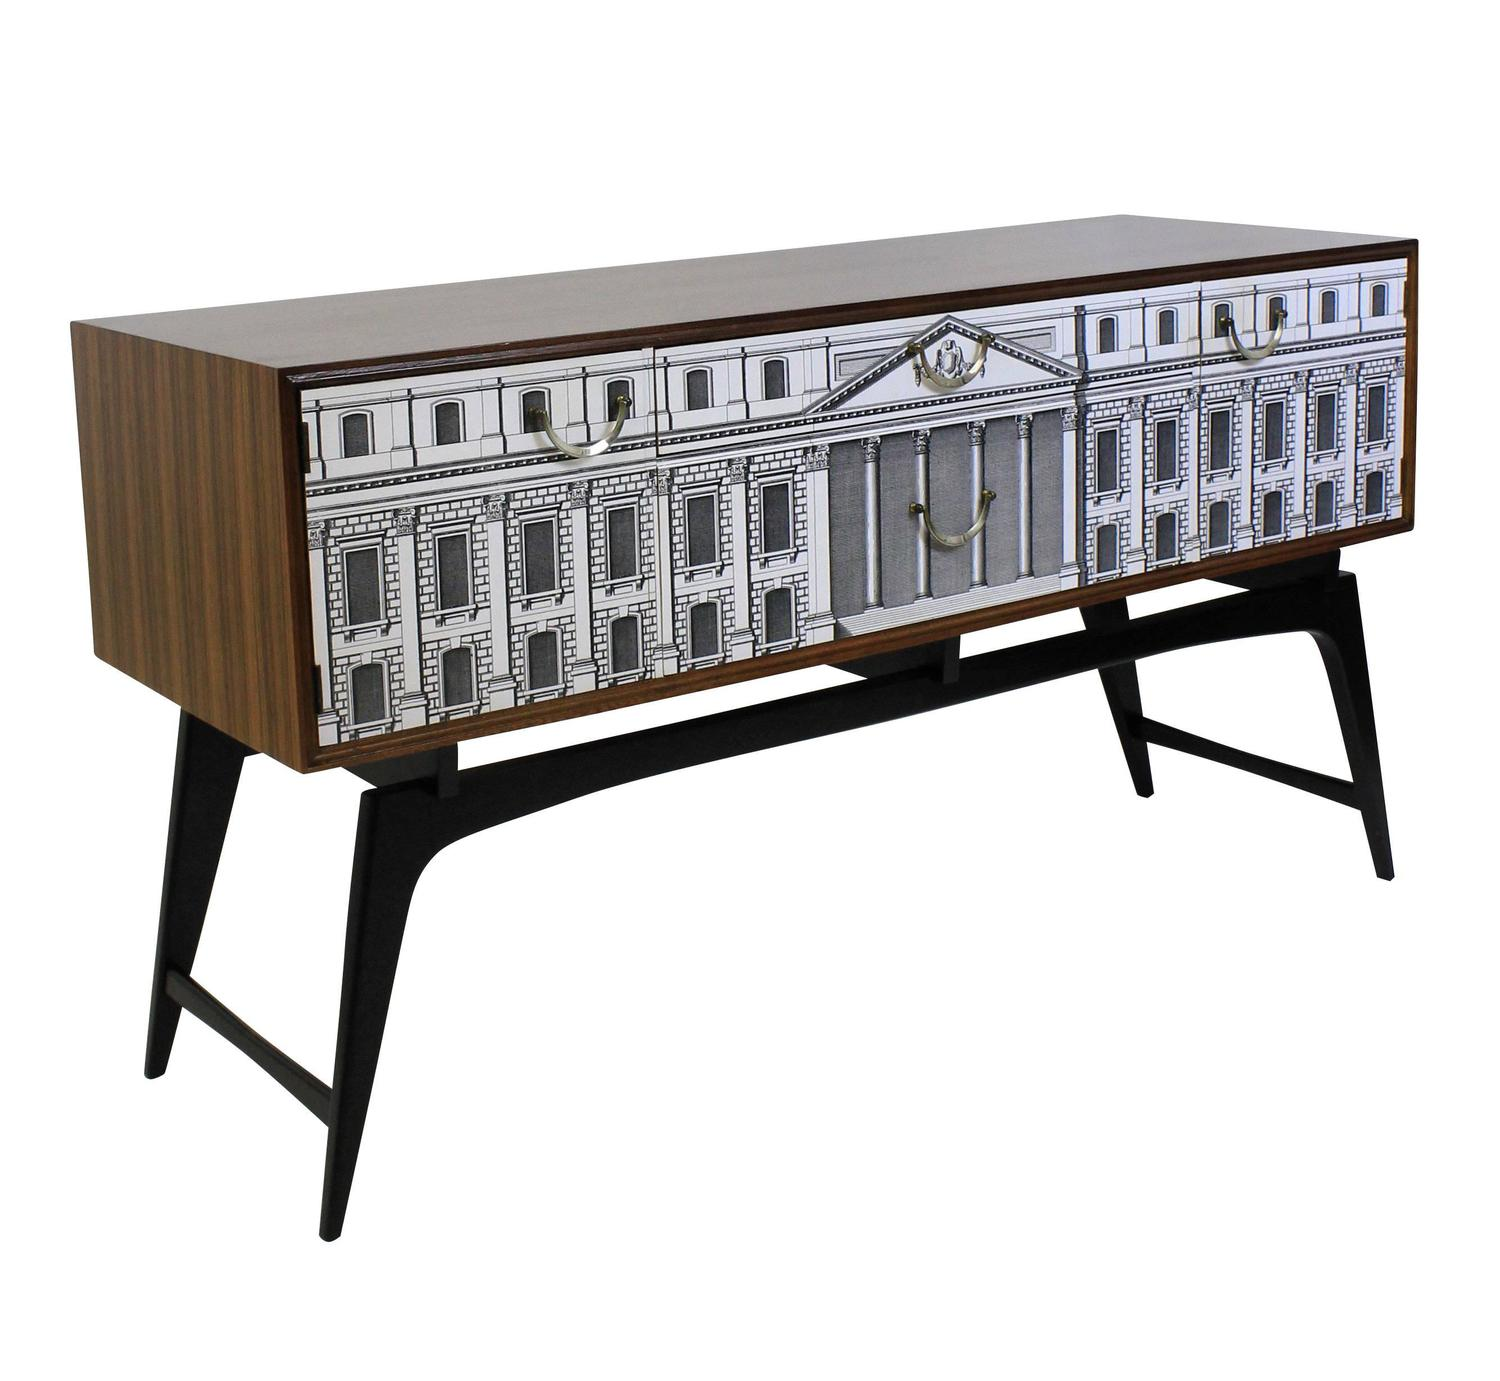 Fornasetti style credenza at 1stdibs for Furniture 2 inspire ltd